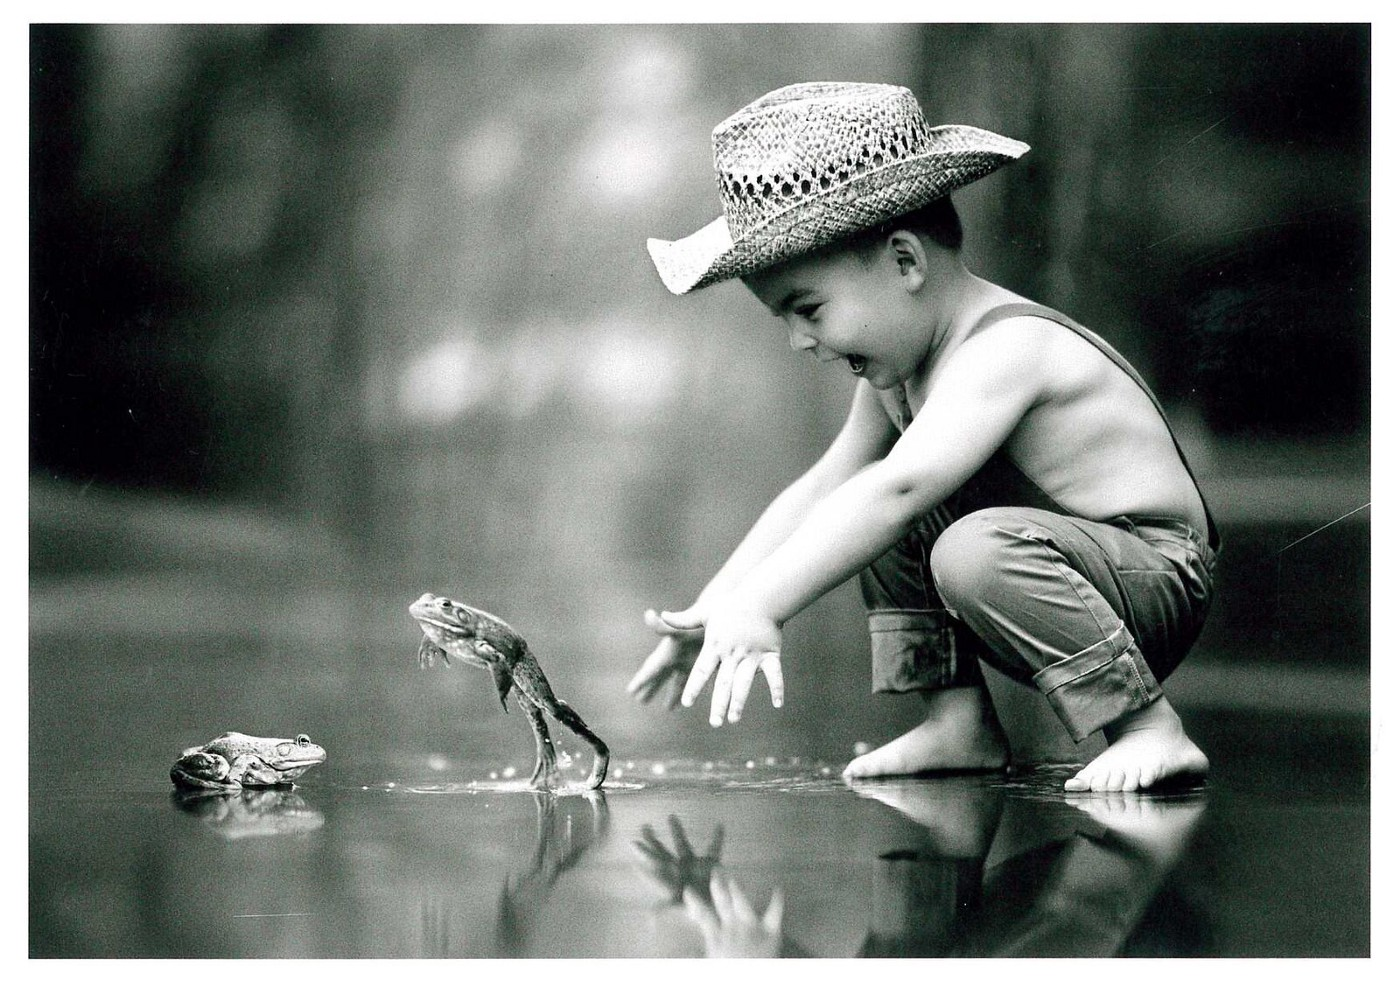 Black and white photo of a barefoot boy in overalls and a straw hat reaching for a jumping frog.